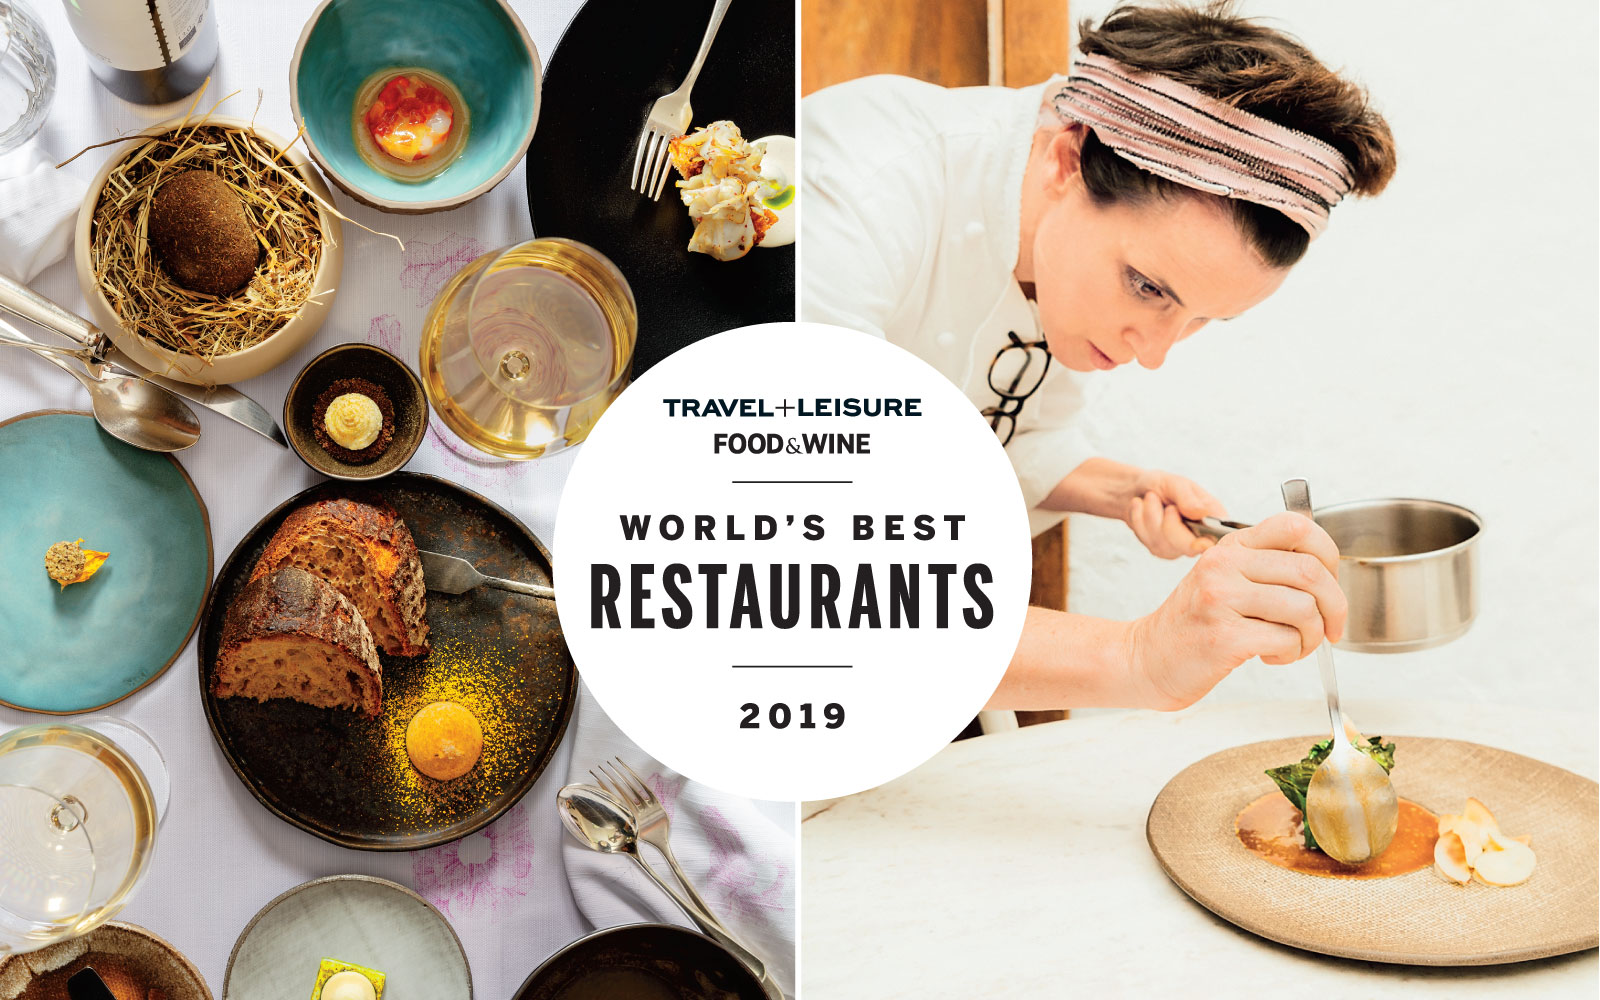 How We Chose the World's Best Restaurants 2019